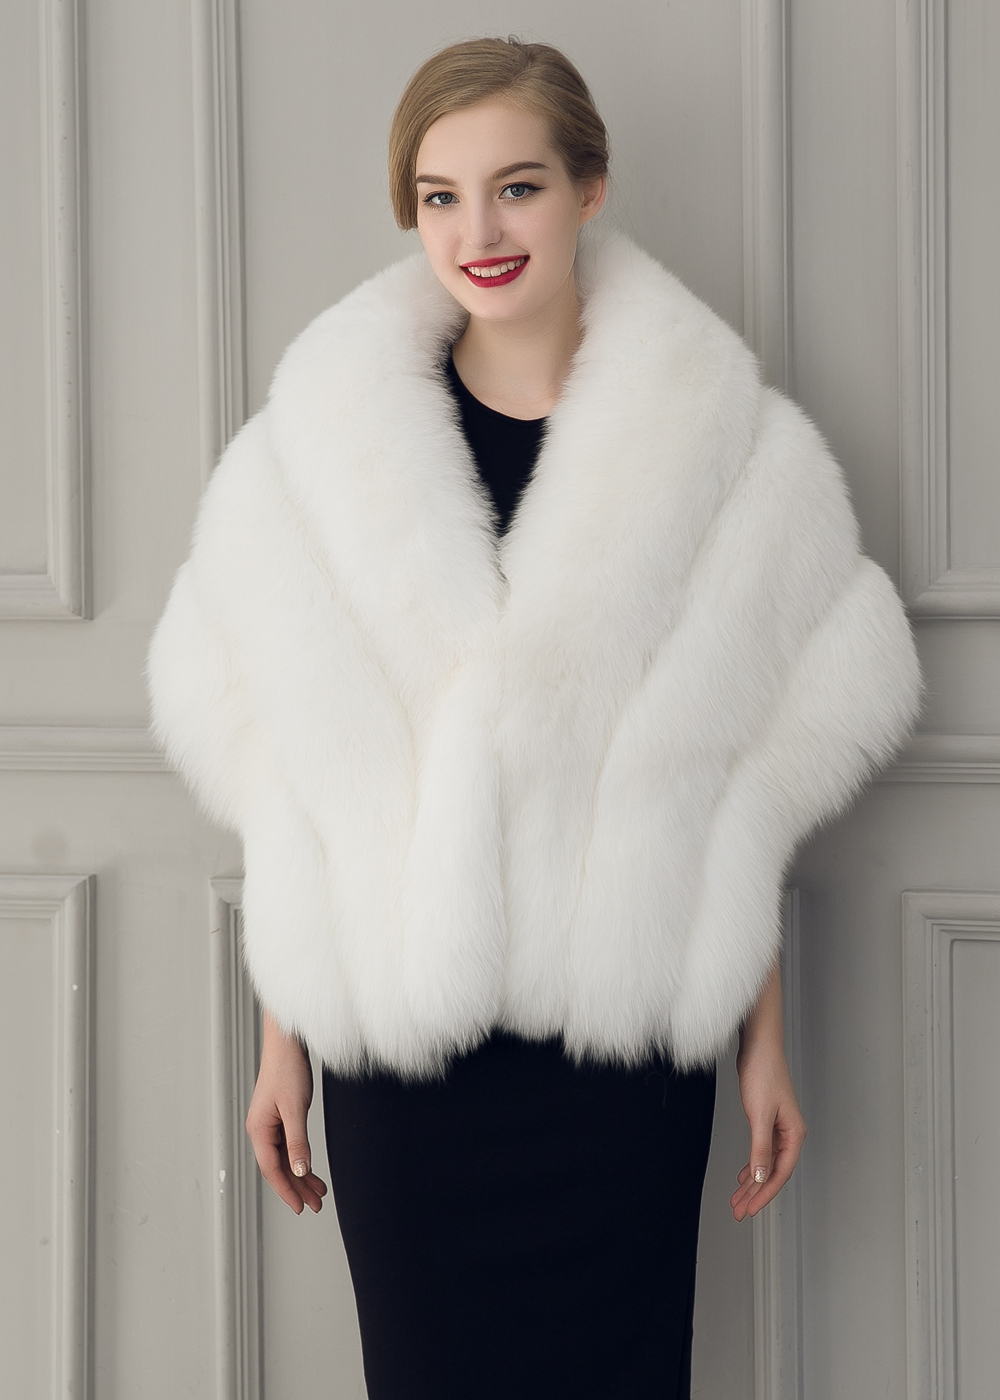 Cheap jacket raincoat, Buy Quality jacket heater directly from China jacket polar Suppliers: Plus Size 5XL 6XL White Black Women's Faux Fur Gilet Coat Rabbit Mink Fox Fur Vest Medium-long V-Neck Fur Waistcoats Jacket Enjoy Free Shipping Worldwide! Limited Time Sale Easy Return.5/5(7).